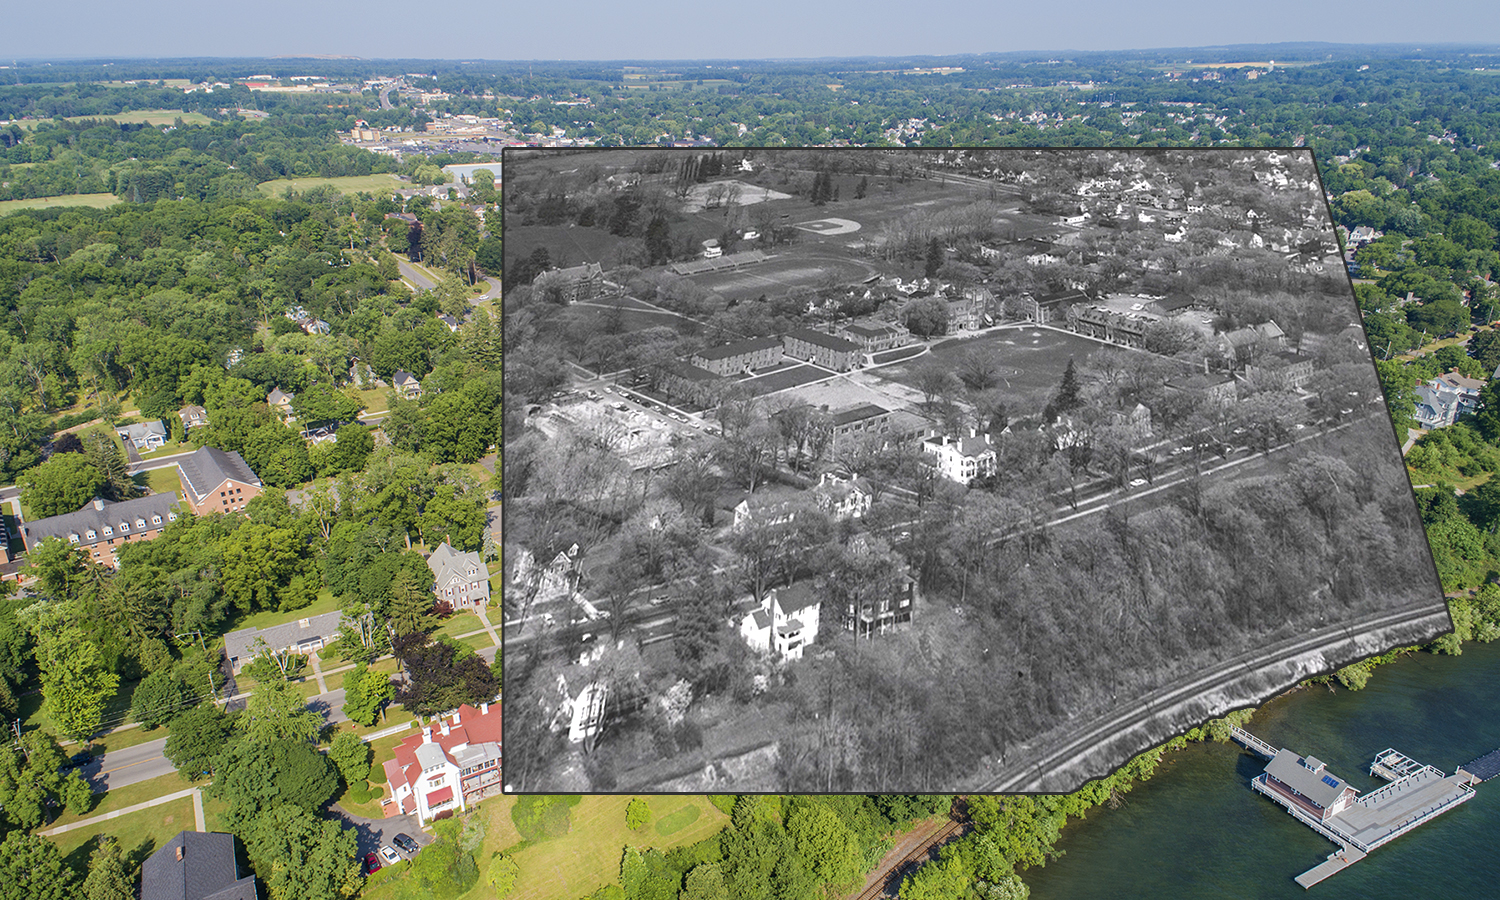 Before the construction of the Warren Hunting Smith Library and Stern Hall, the William Smith green was home to Boswell Field. Also pictured is the old baseball diamond where Scandling Center and Cozzens Field now stand.